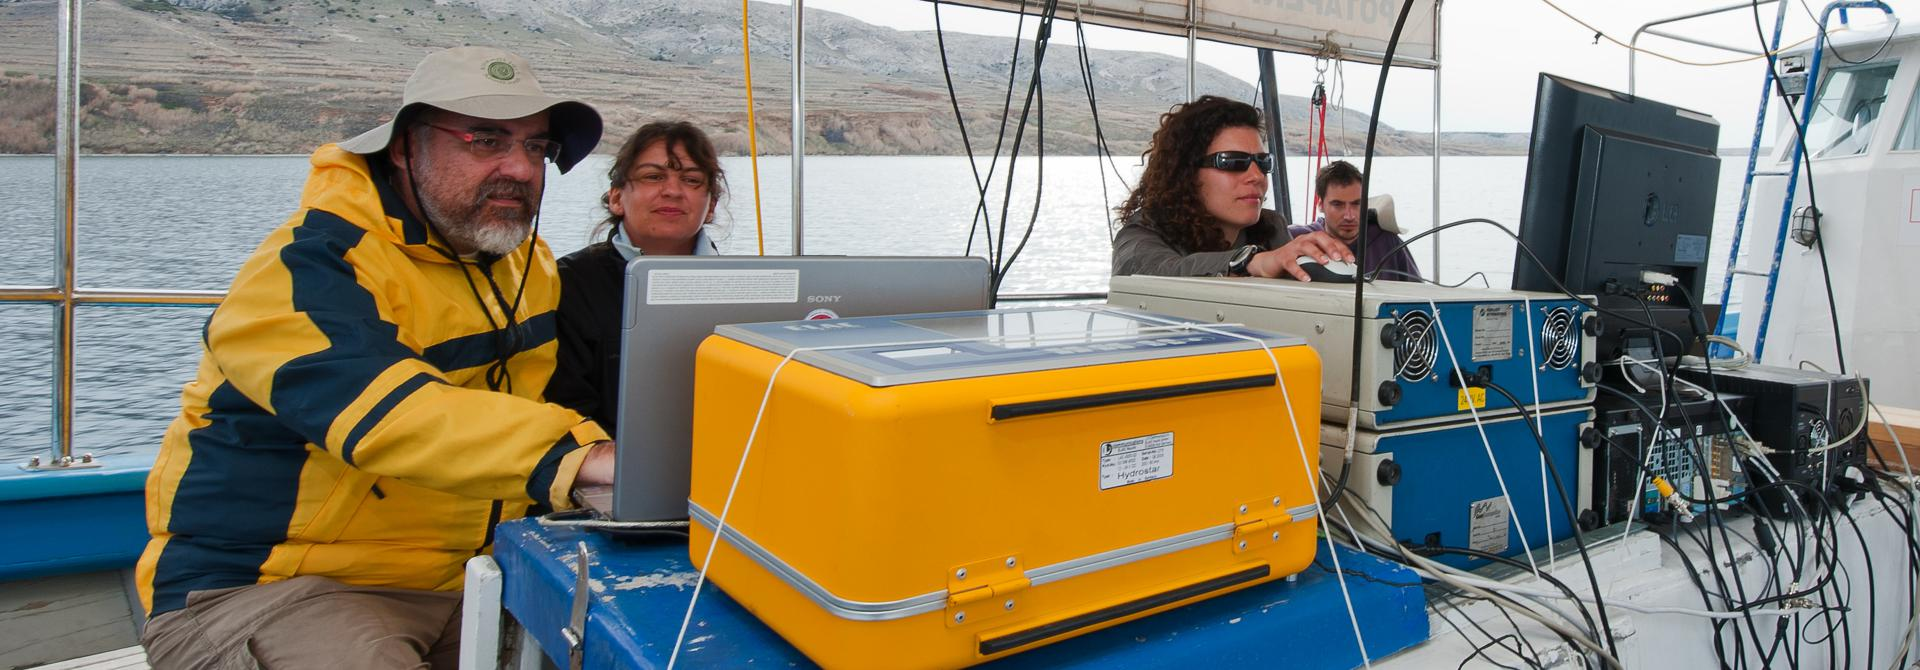 Gulf of Pag-The results of the geophysical survey allow the reconstruction of the process of formation of the Gulf of Pag, and reveal some positions of potential archaeological interest. (Photo: Giulia Boetto)